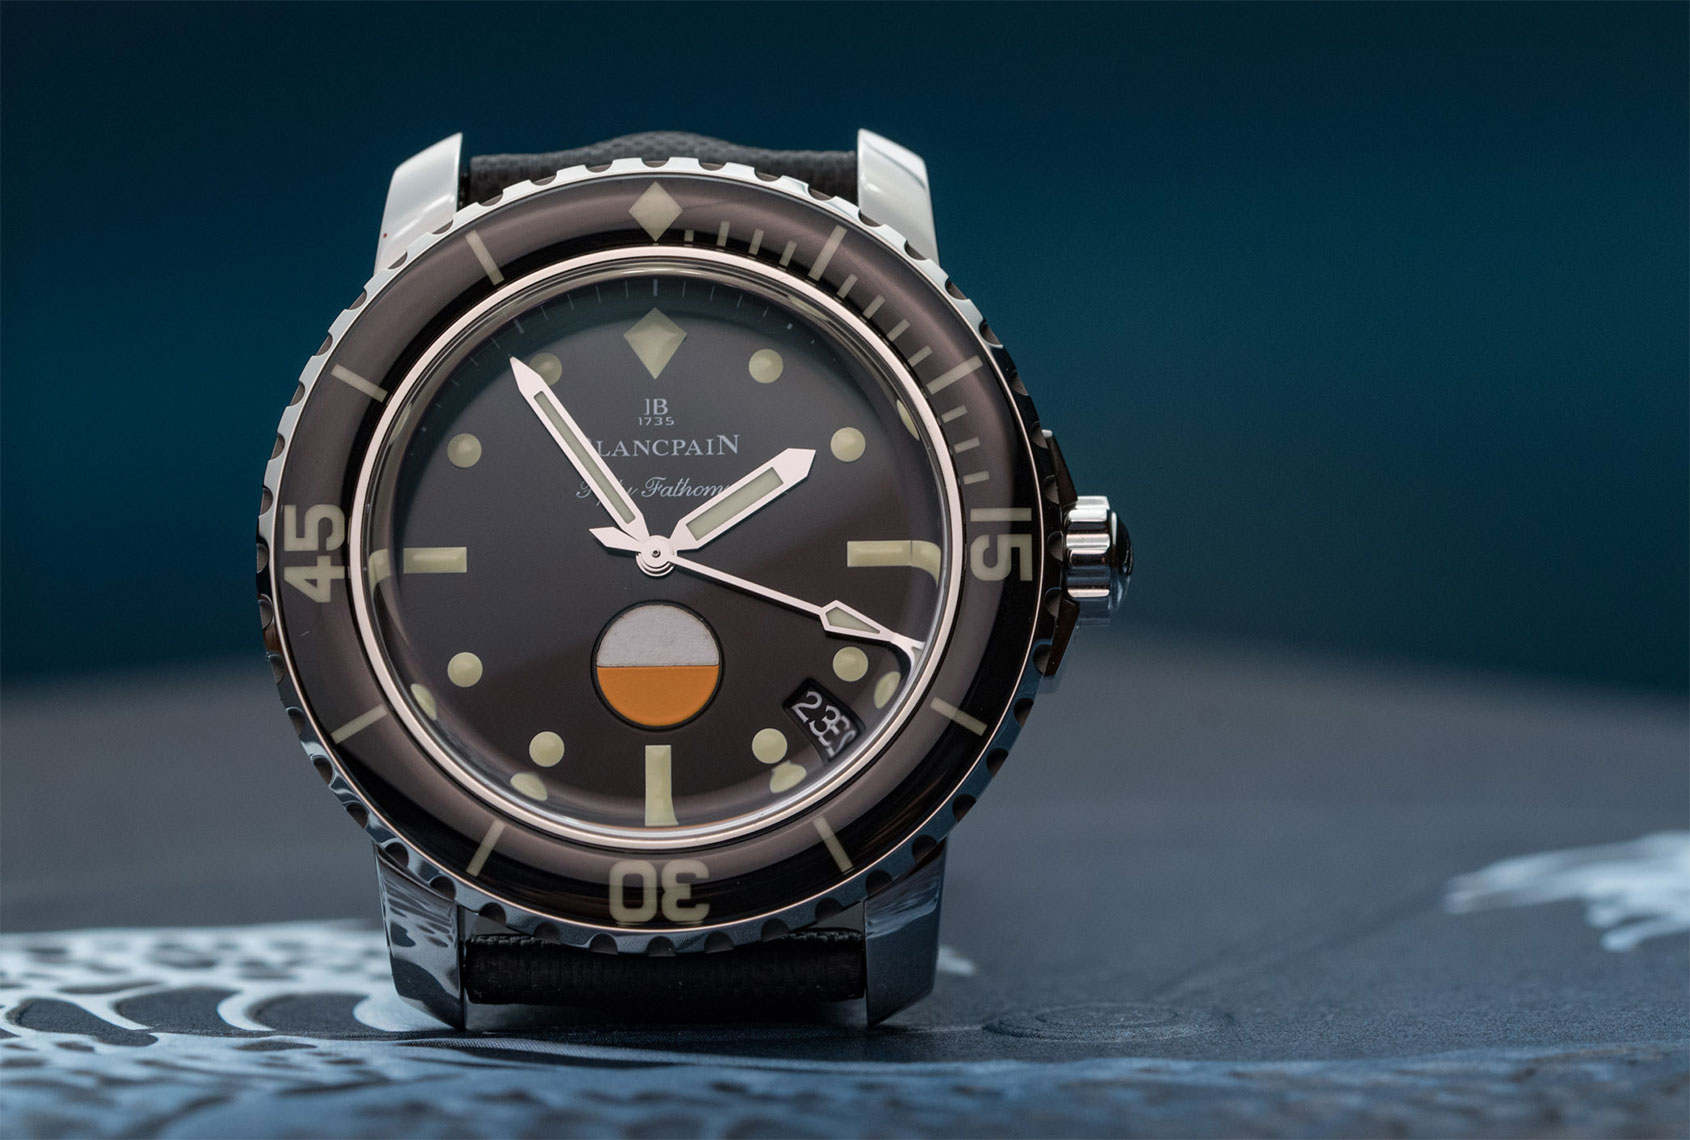 stylish submariner maxim as they these scuba bob s gear are diving rolex rugged ever dive watches best killer